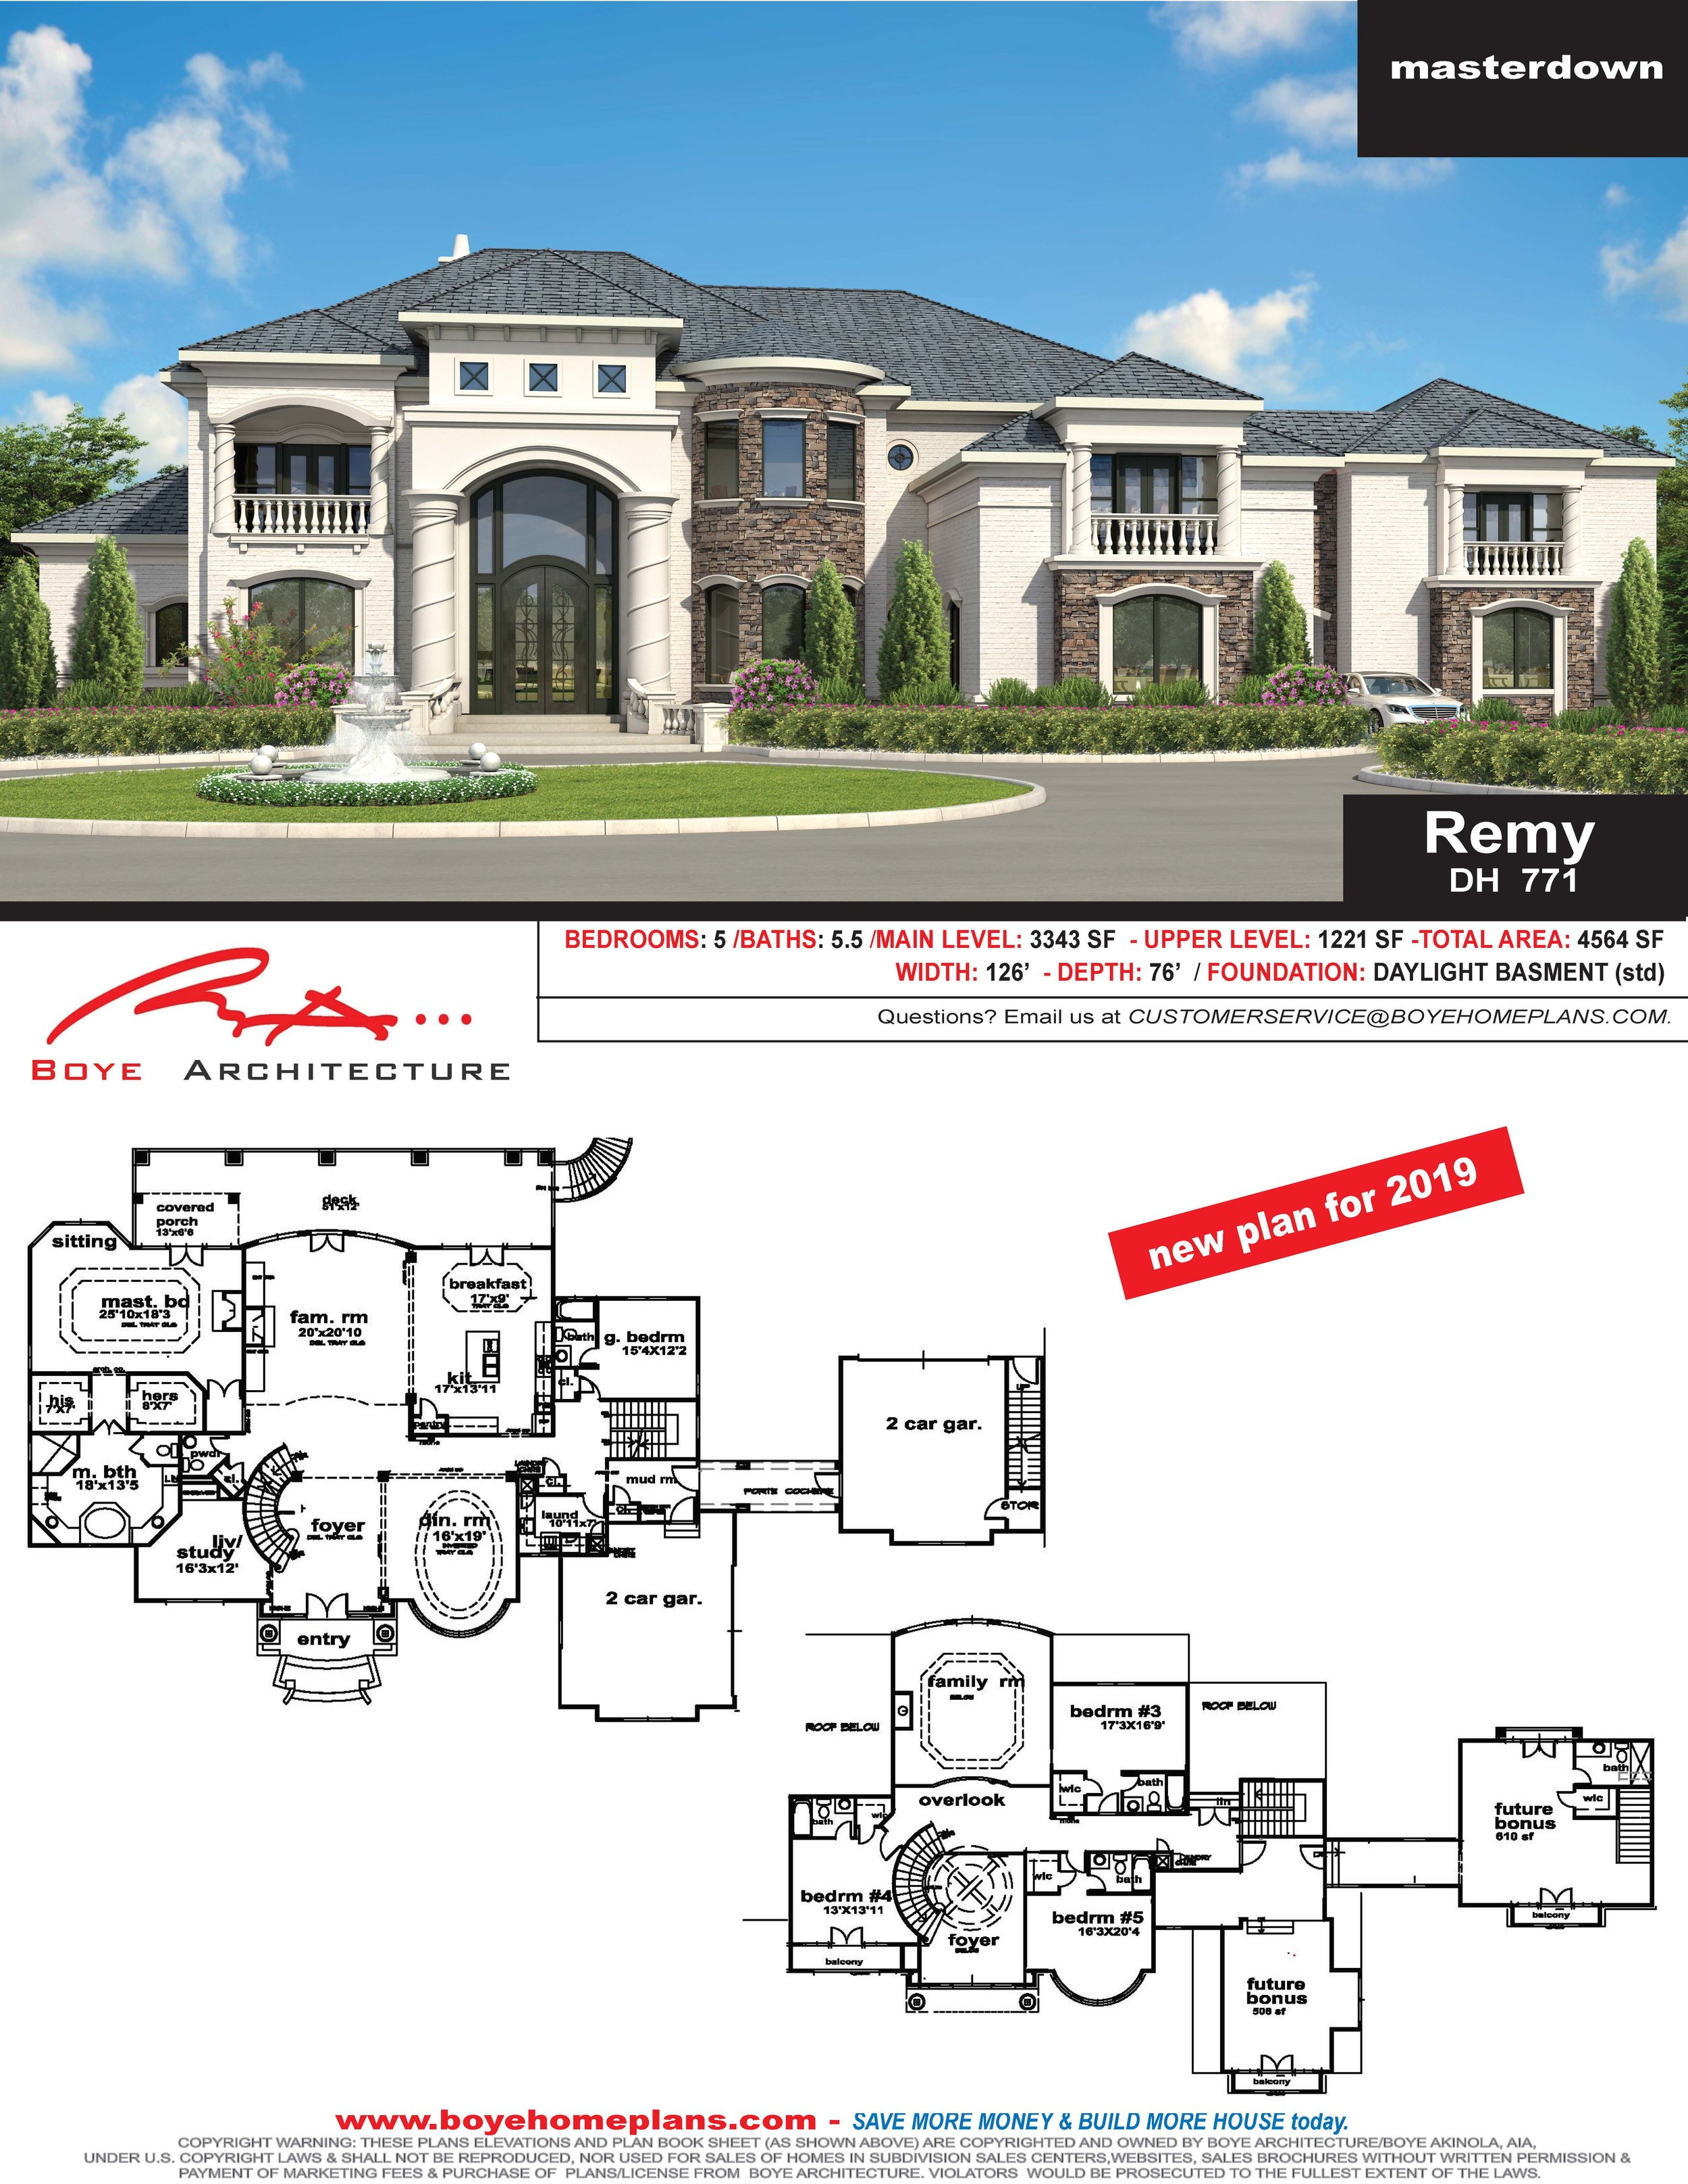 REMY PLAN-DH771-2019 NEW PLAN-070318.jpg